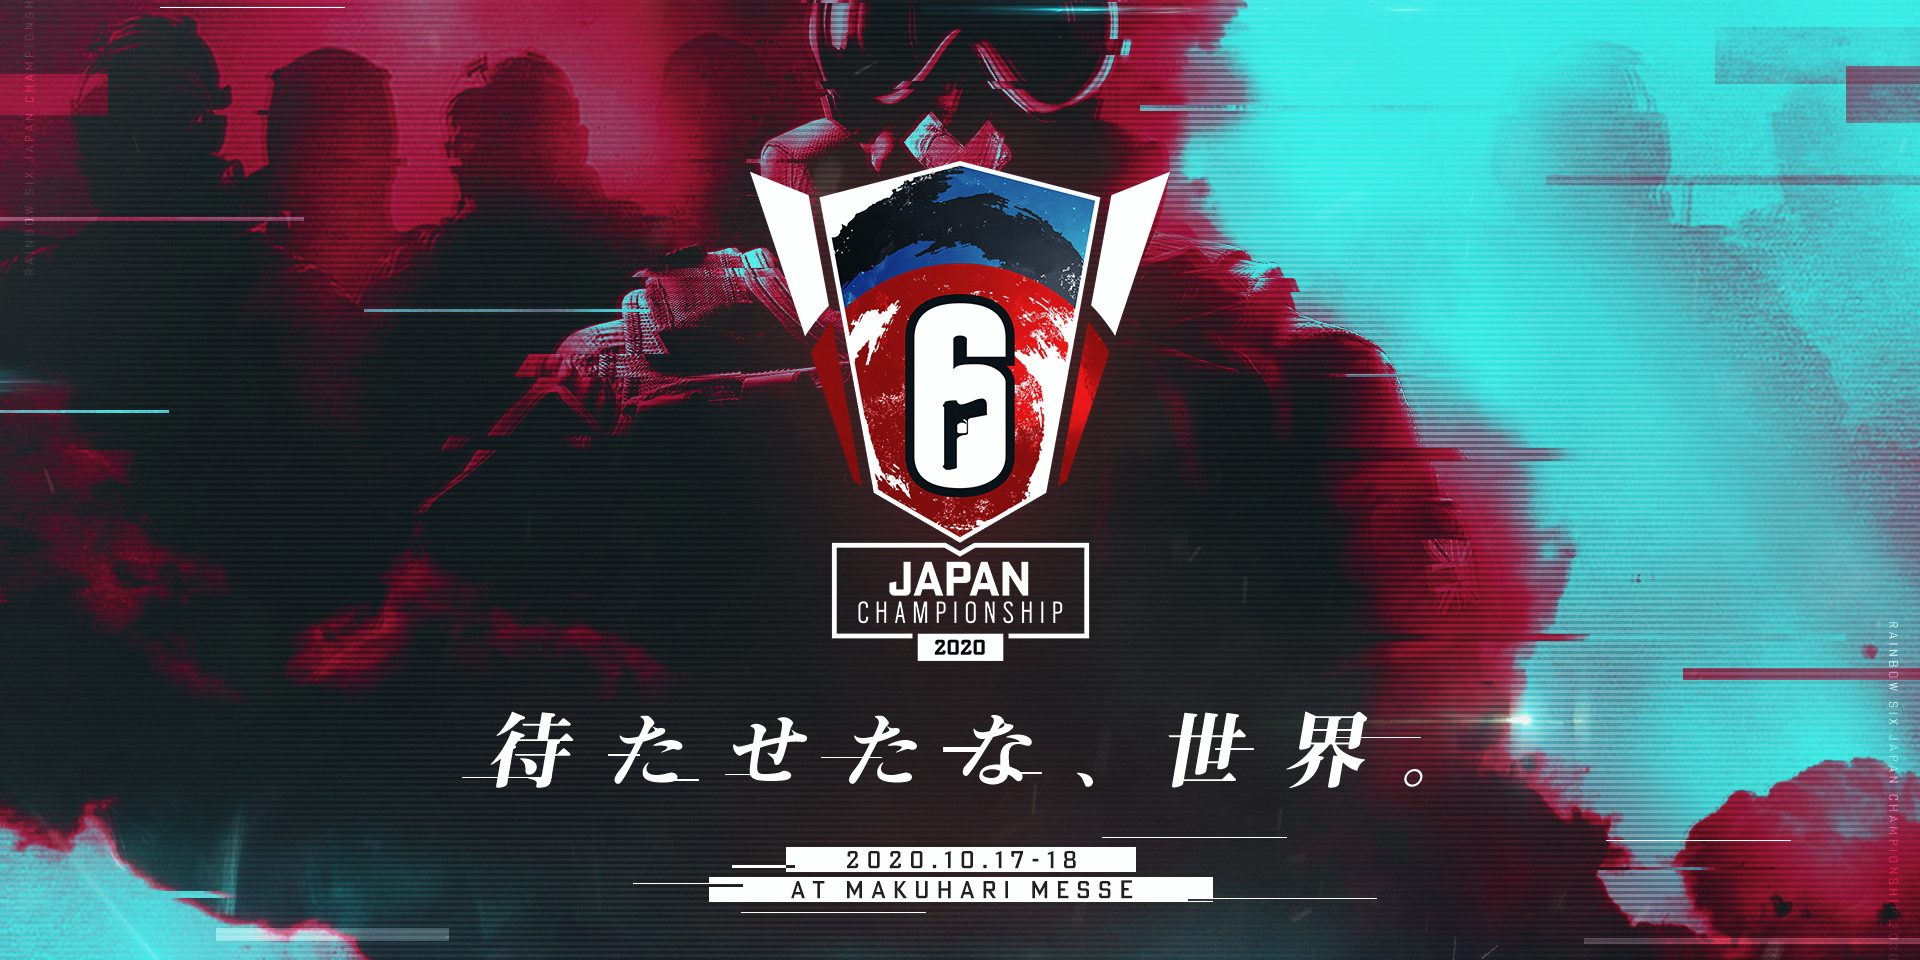 Japan Championship 2020 — Everything You Need to Know